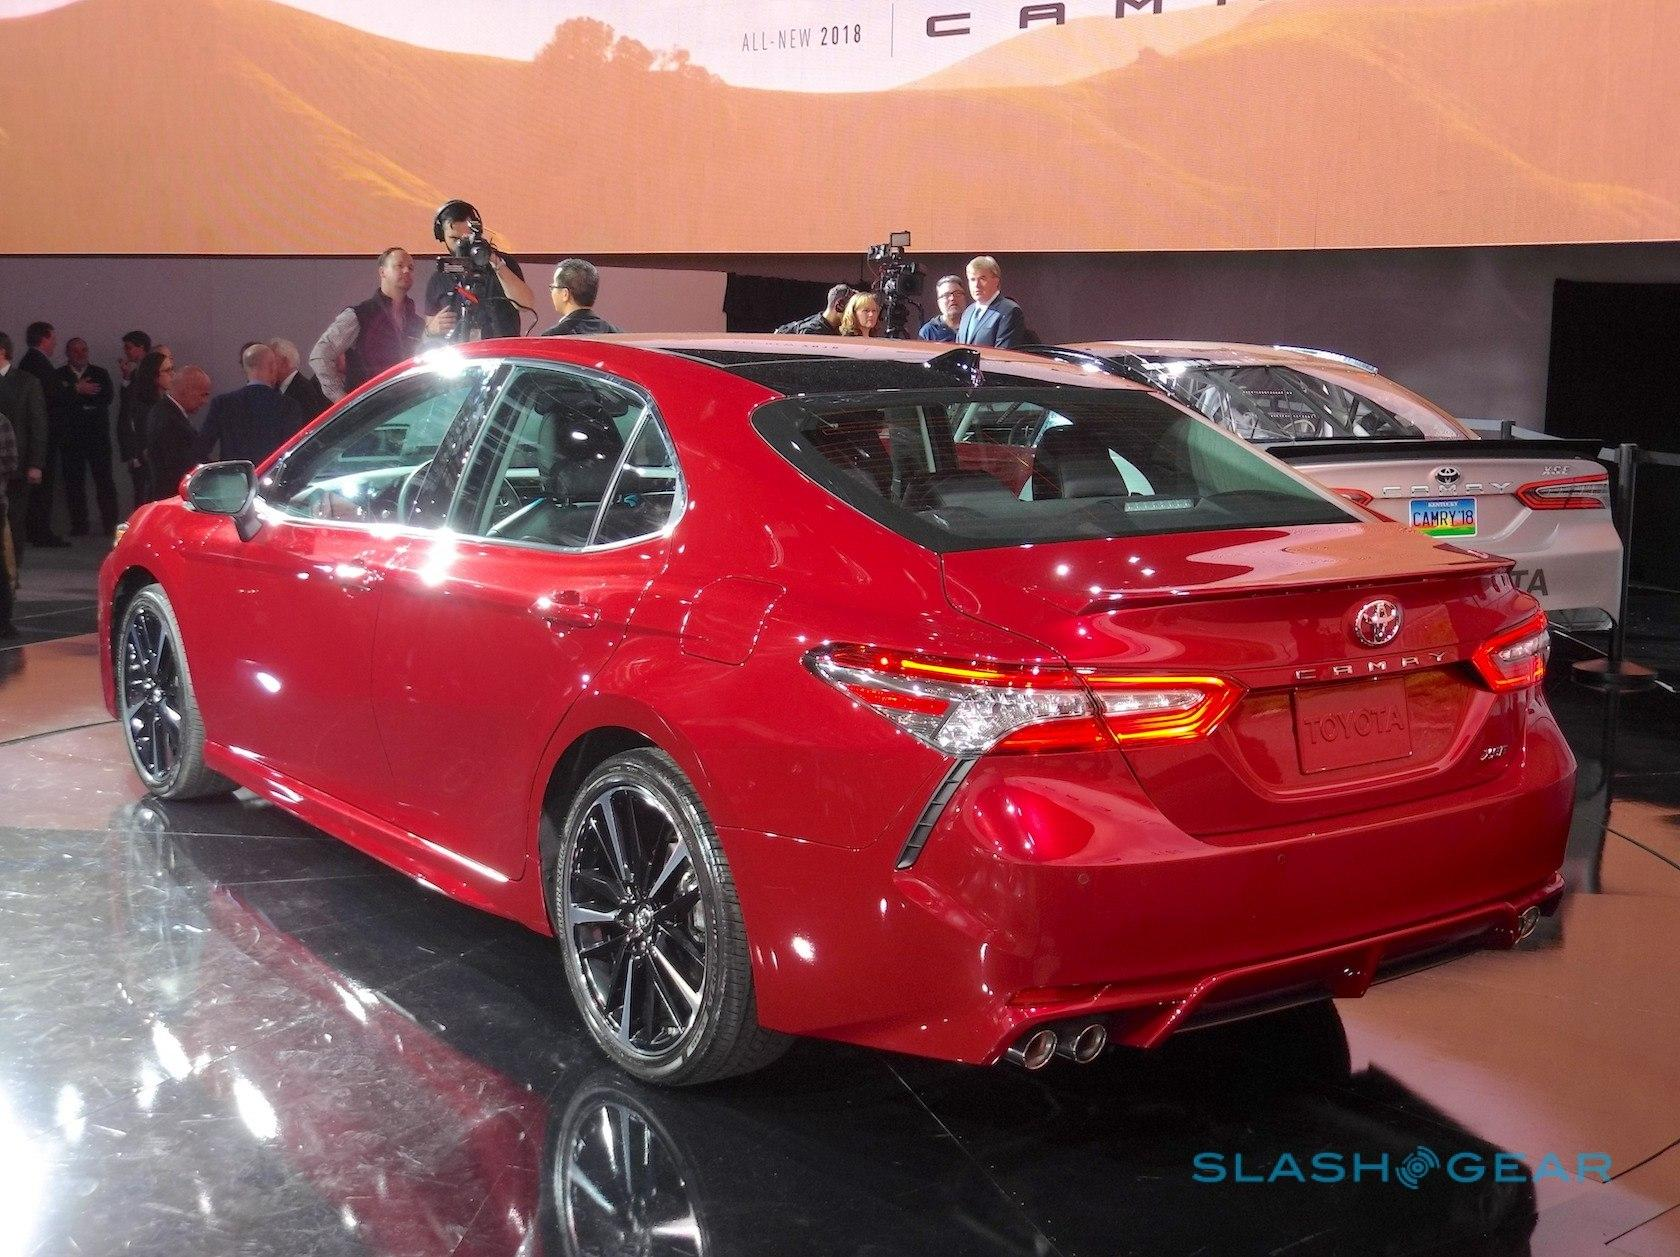 This is the new 2018 Toyota Camry: You'll buy thousands of